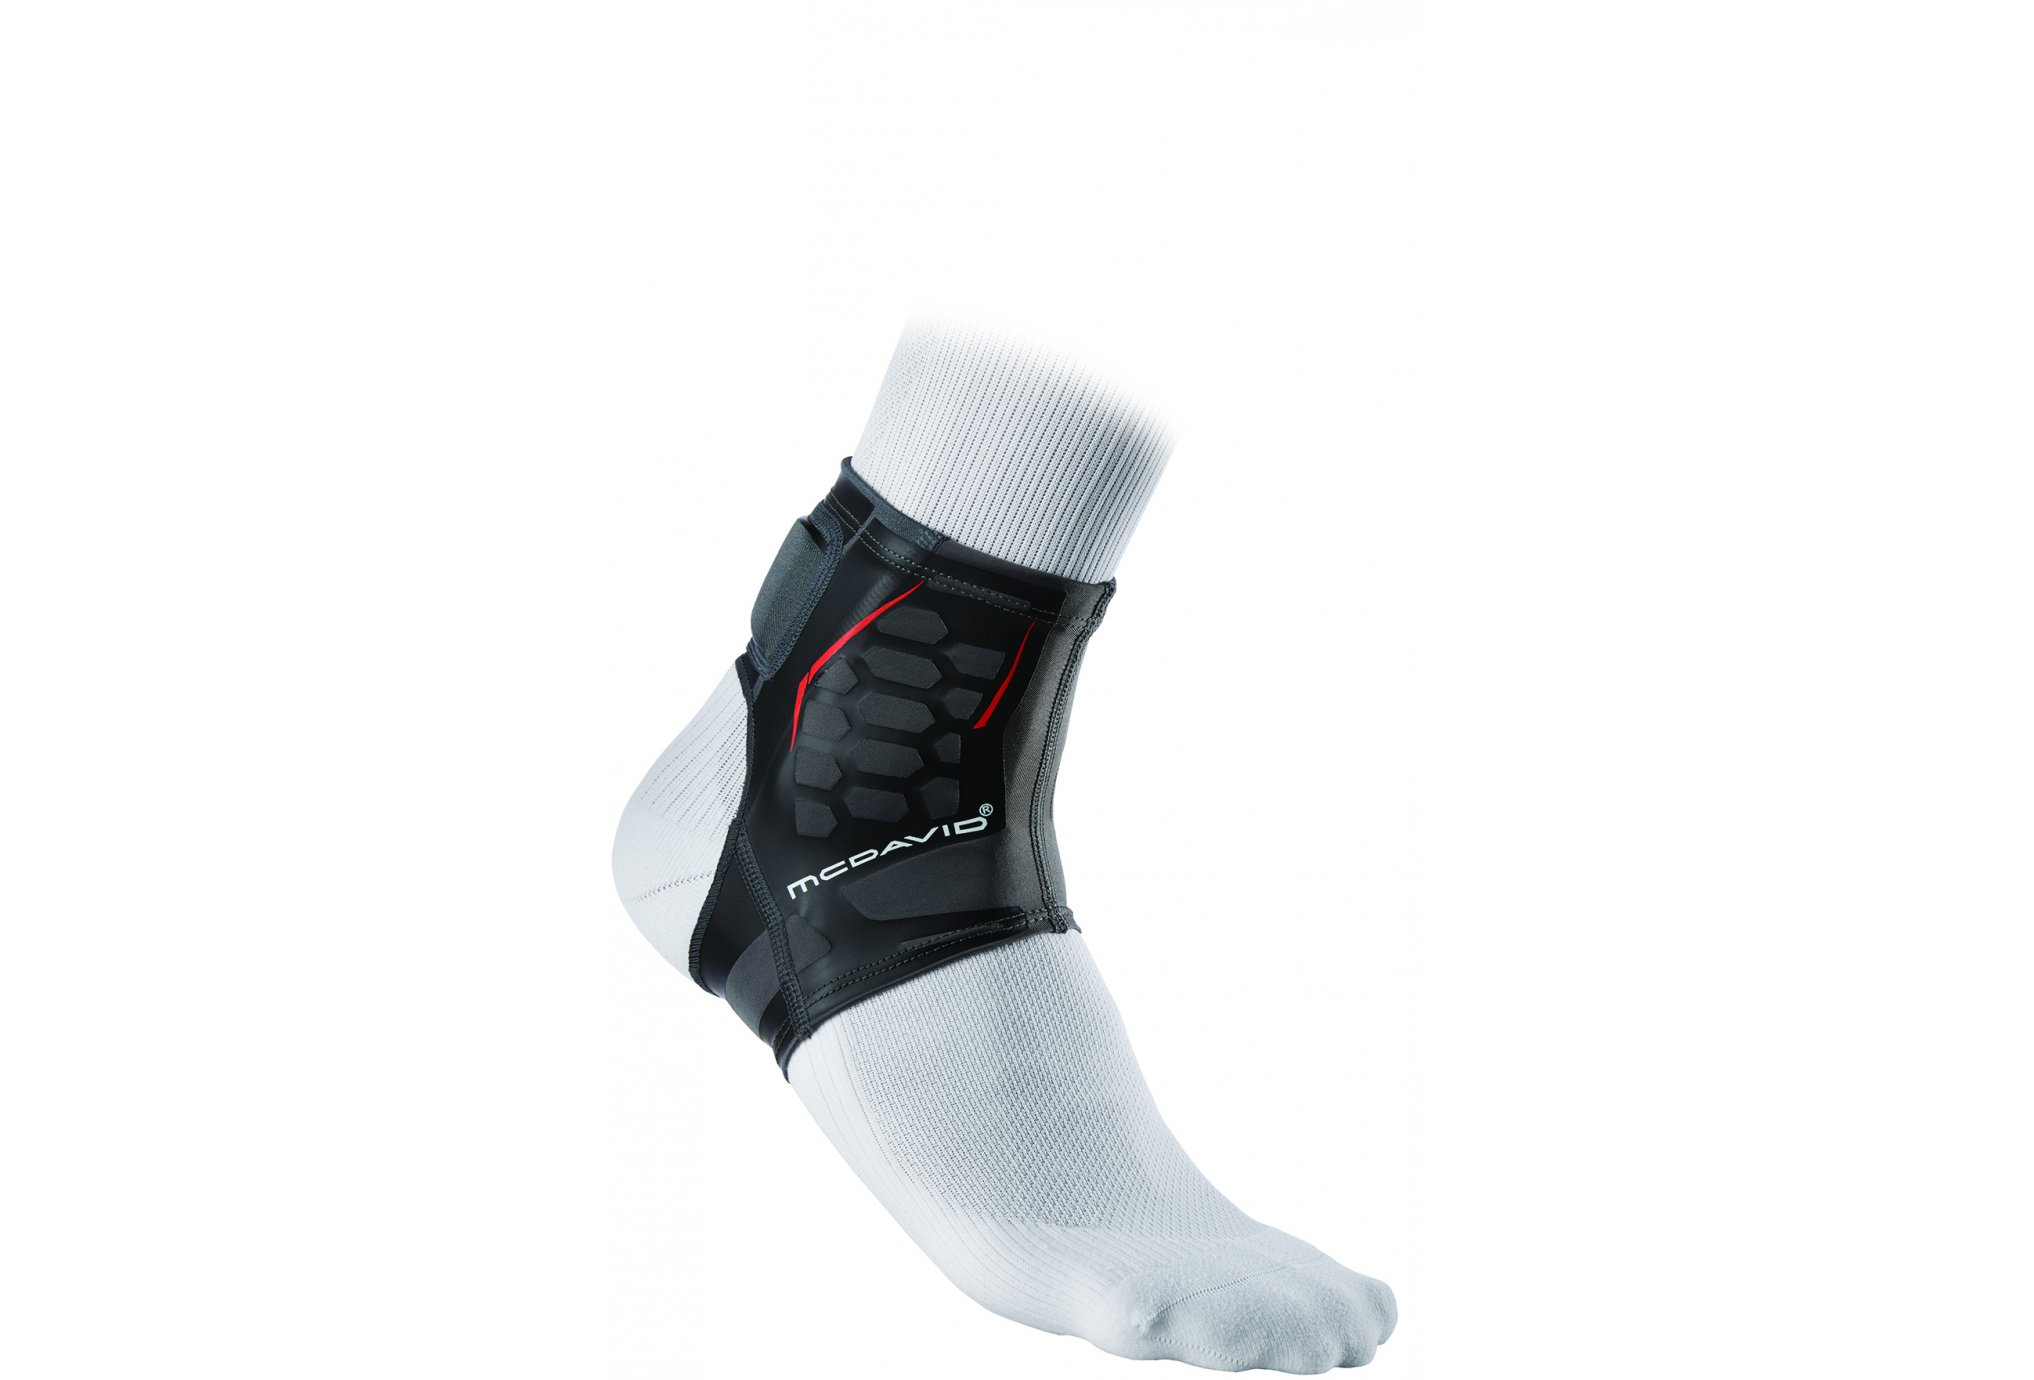 Mcdavid Compression pour tendon d'achille protection musculaire & articulaire